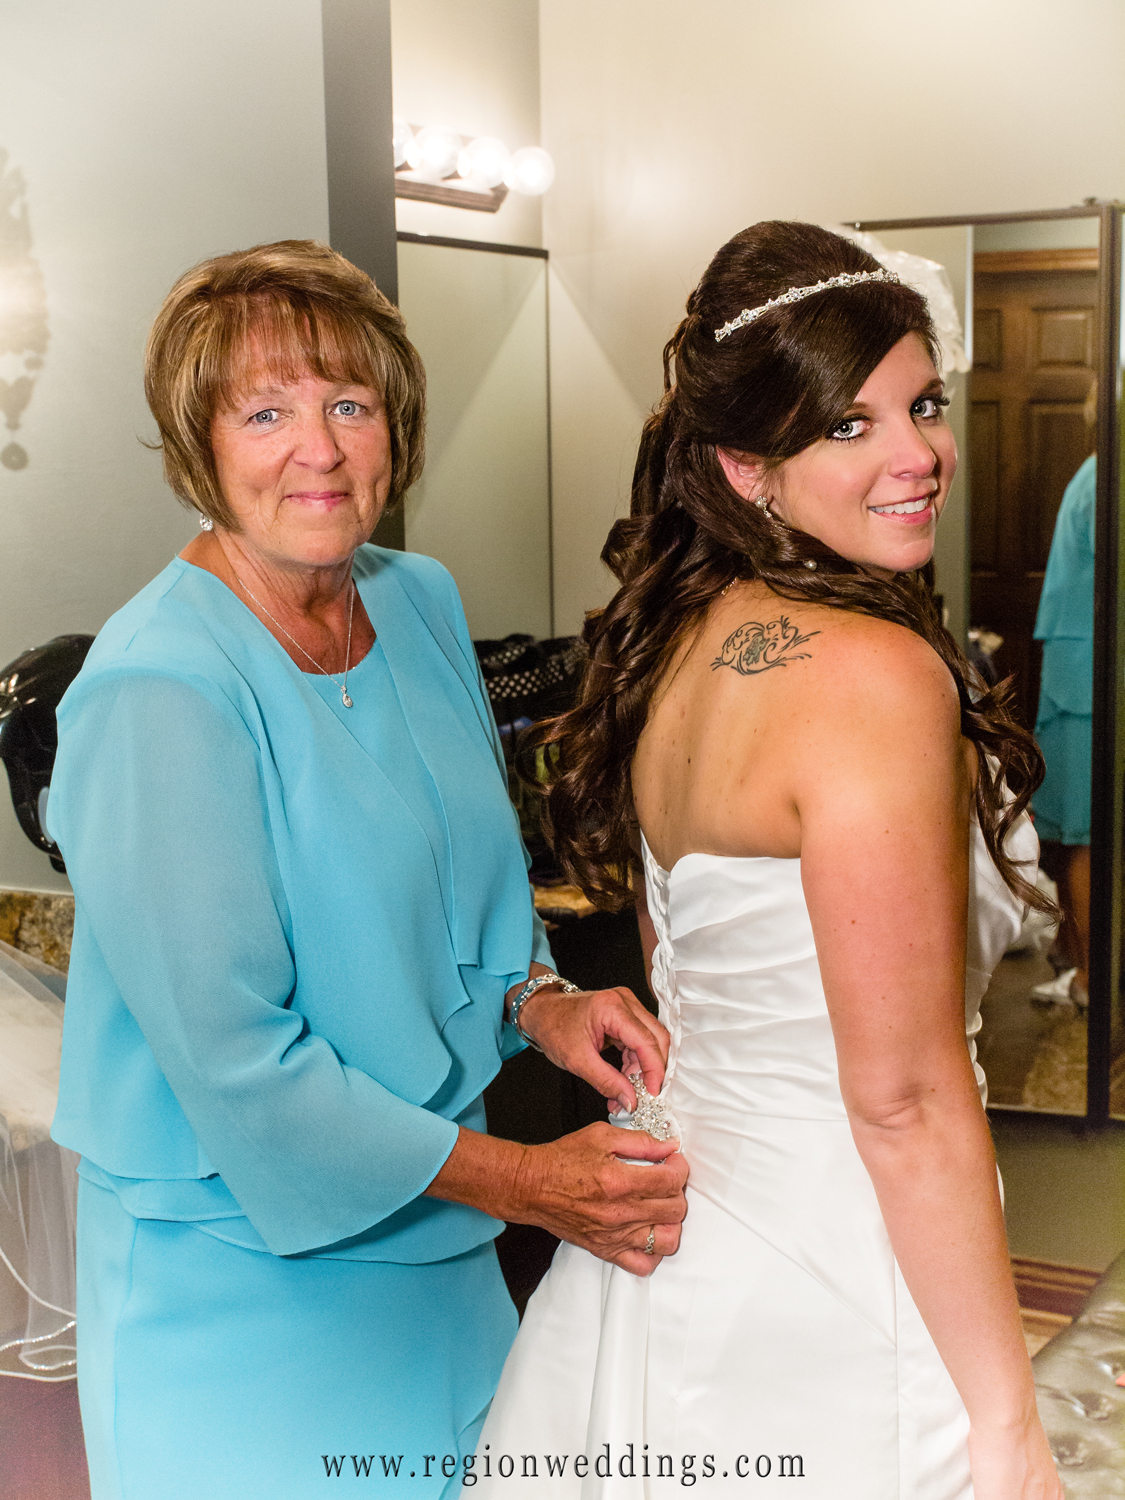 The mother of the bride helps her daughter into her wedding dress.